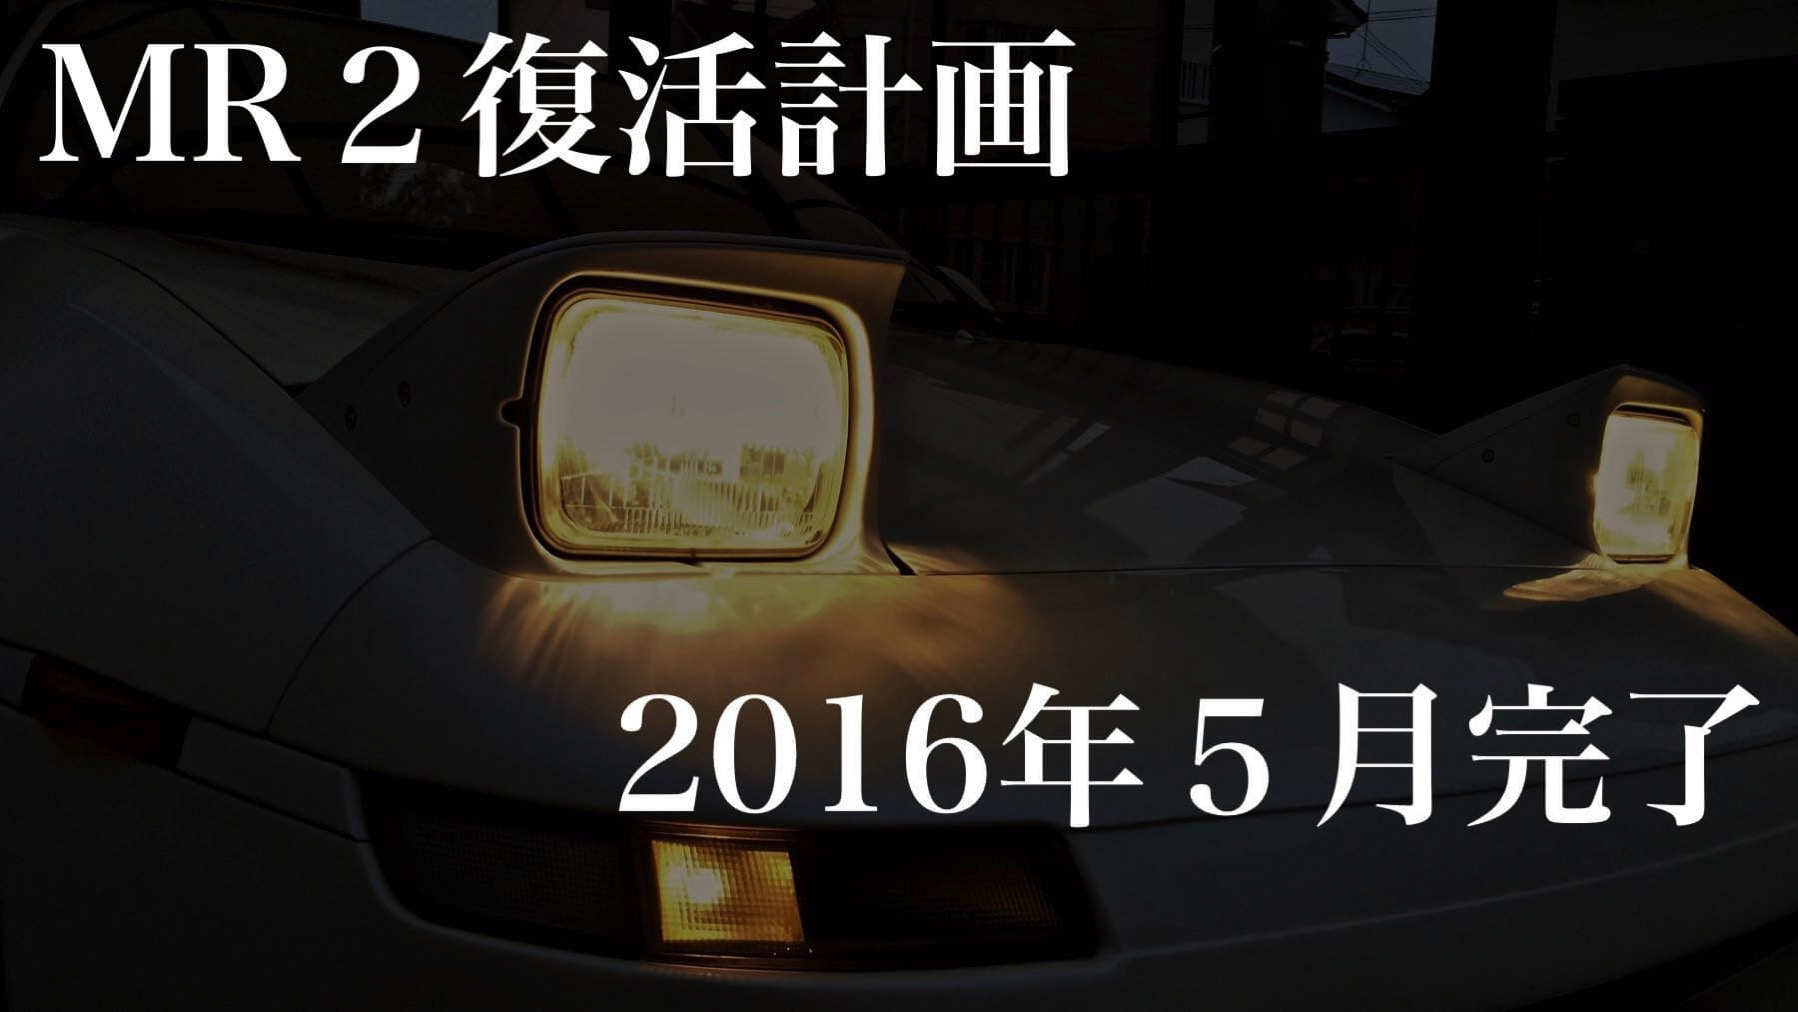 MR2 Resurrection plan